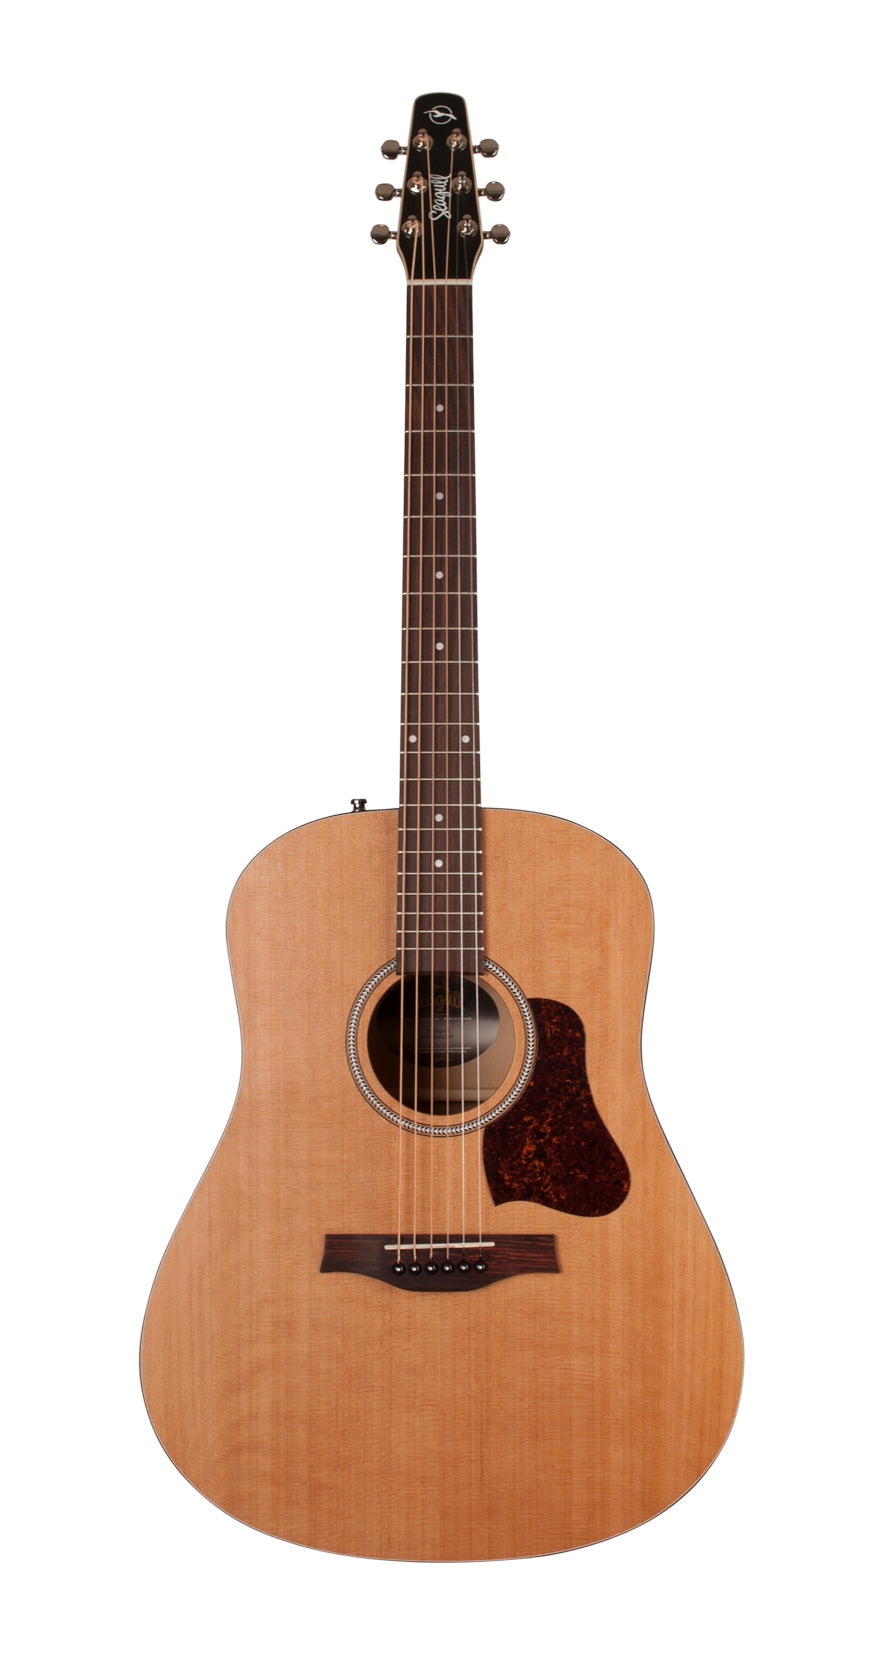 Seagull S6 Original Acoustic Guitar - Natural